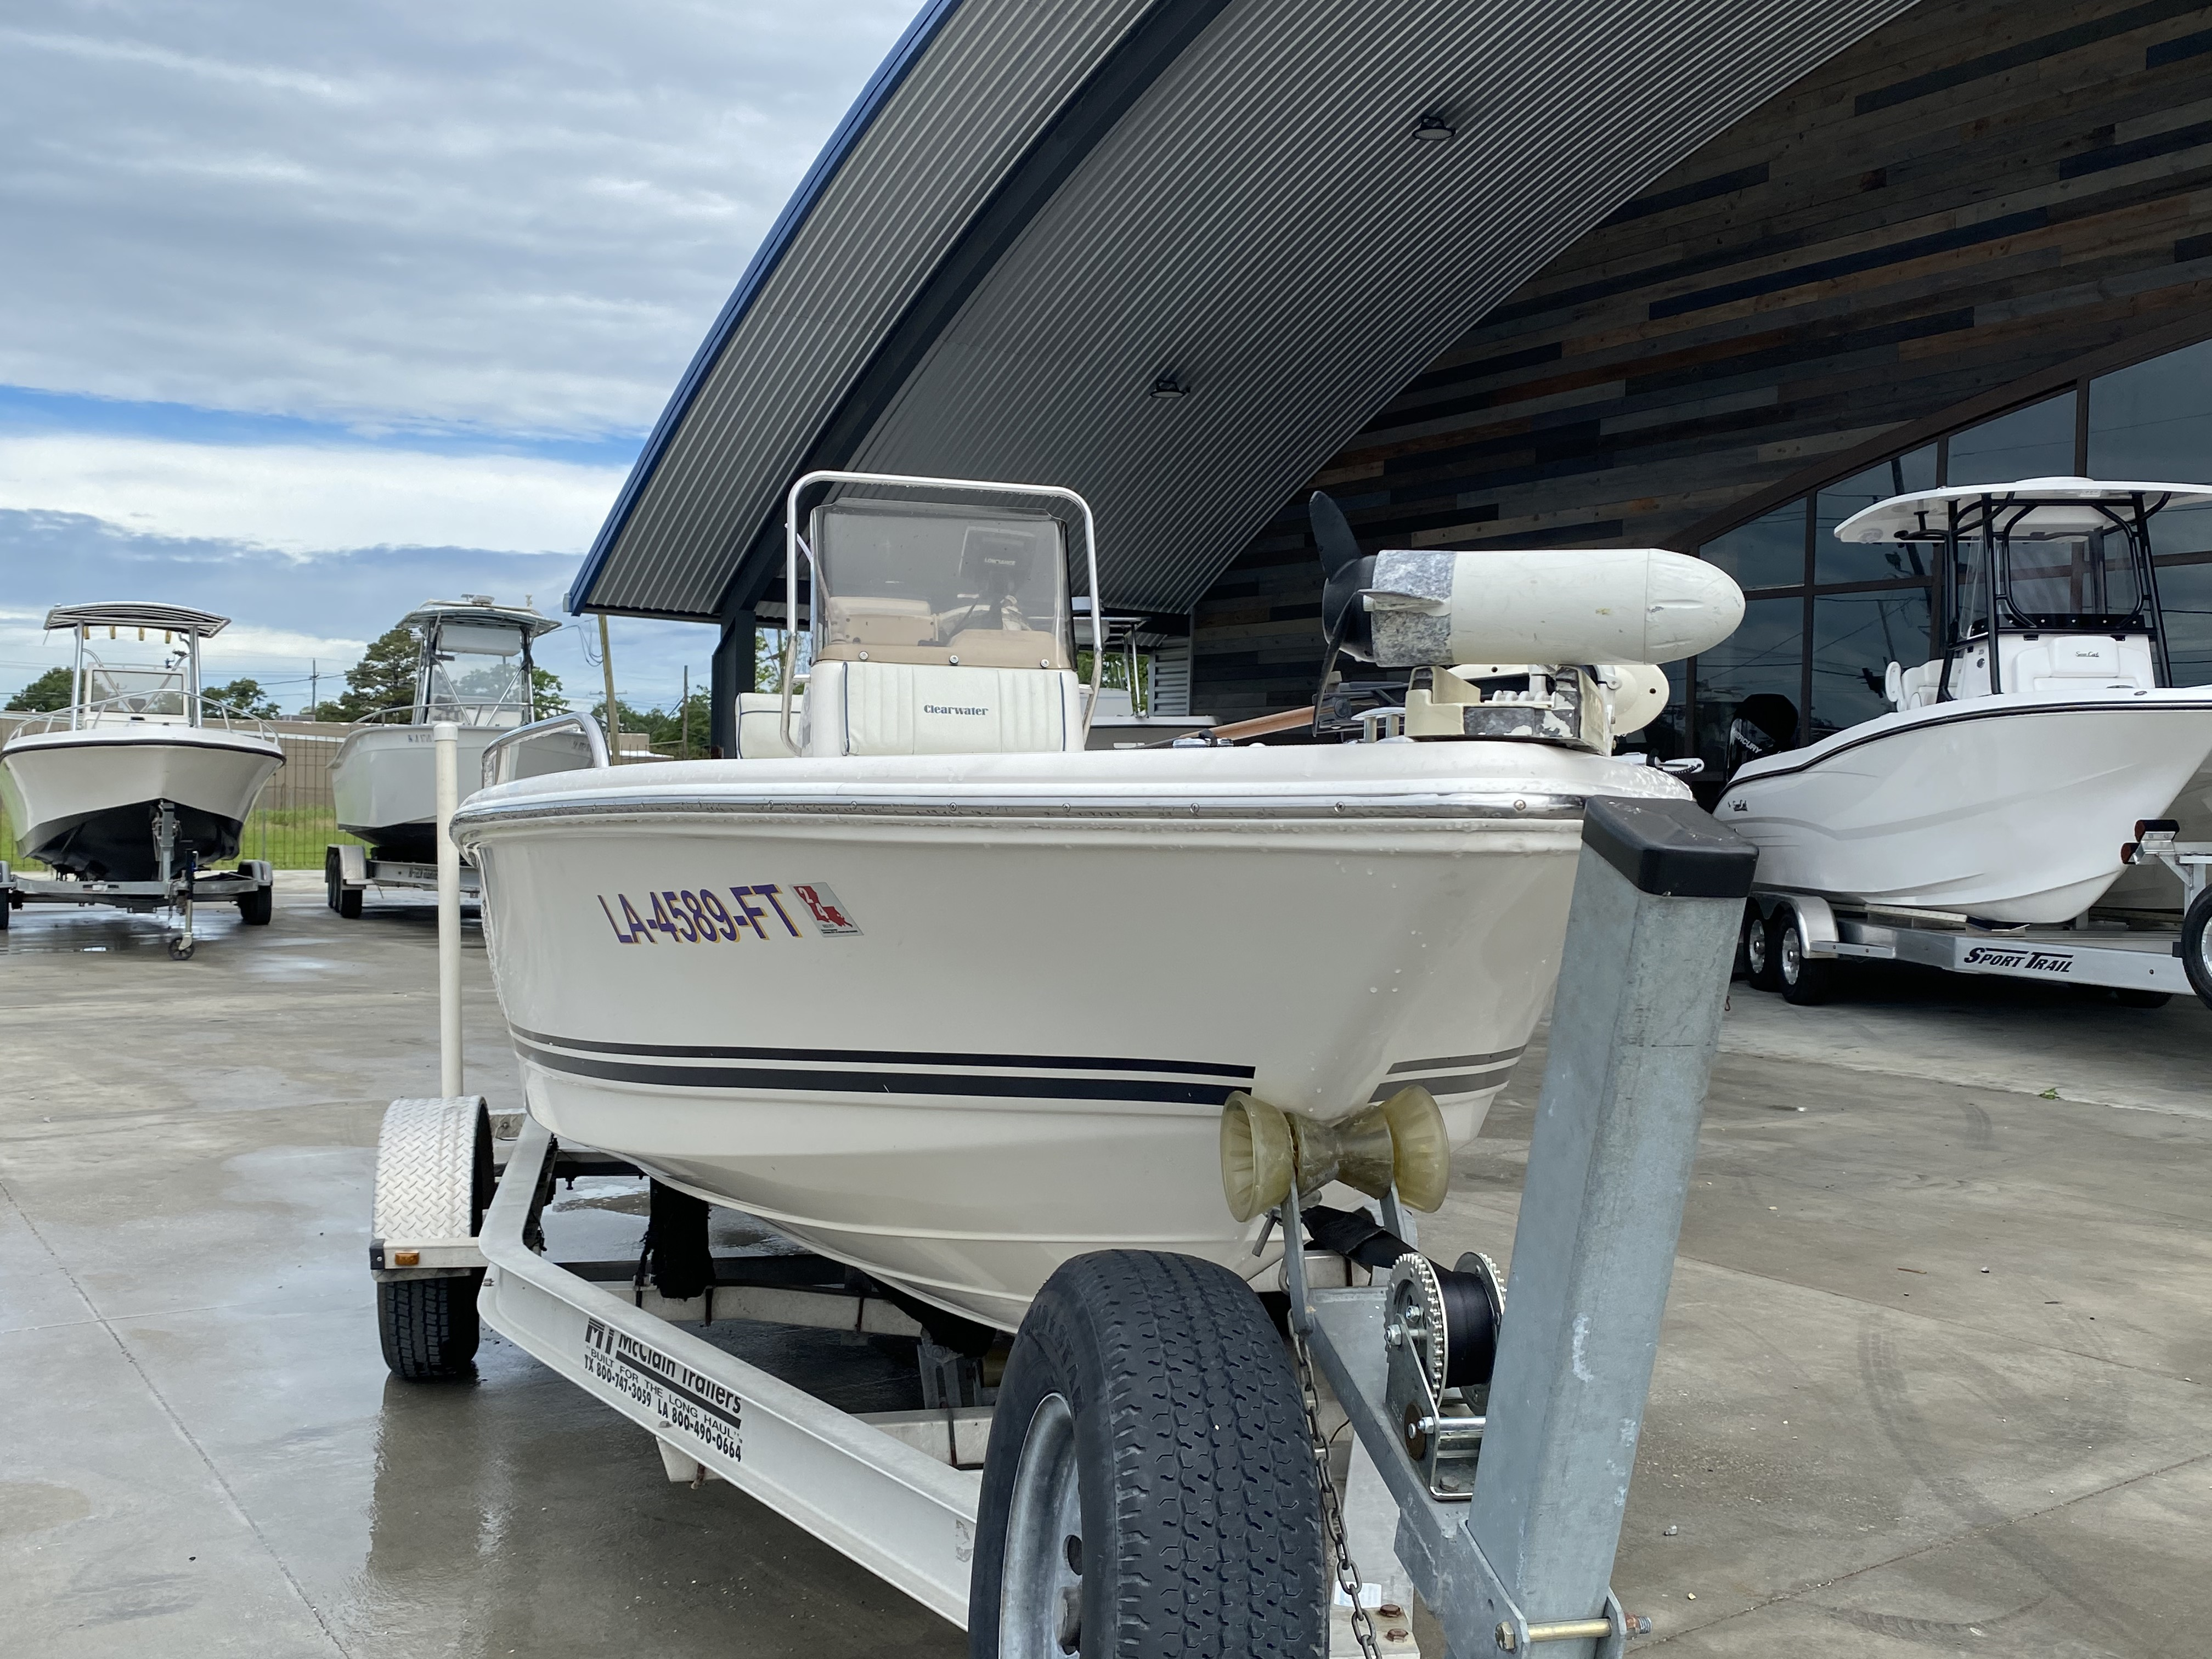 2007 Clearwater boat for sale, model of the boat is 1900 & Image # 11 of 13